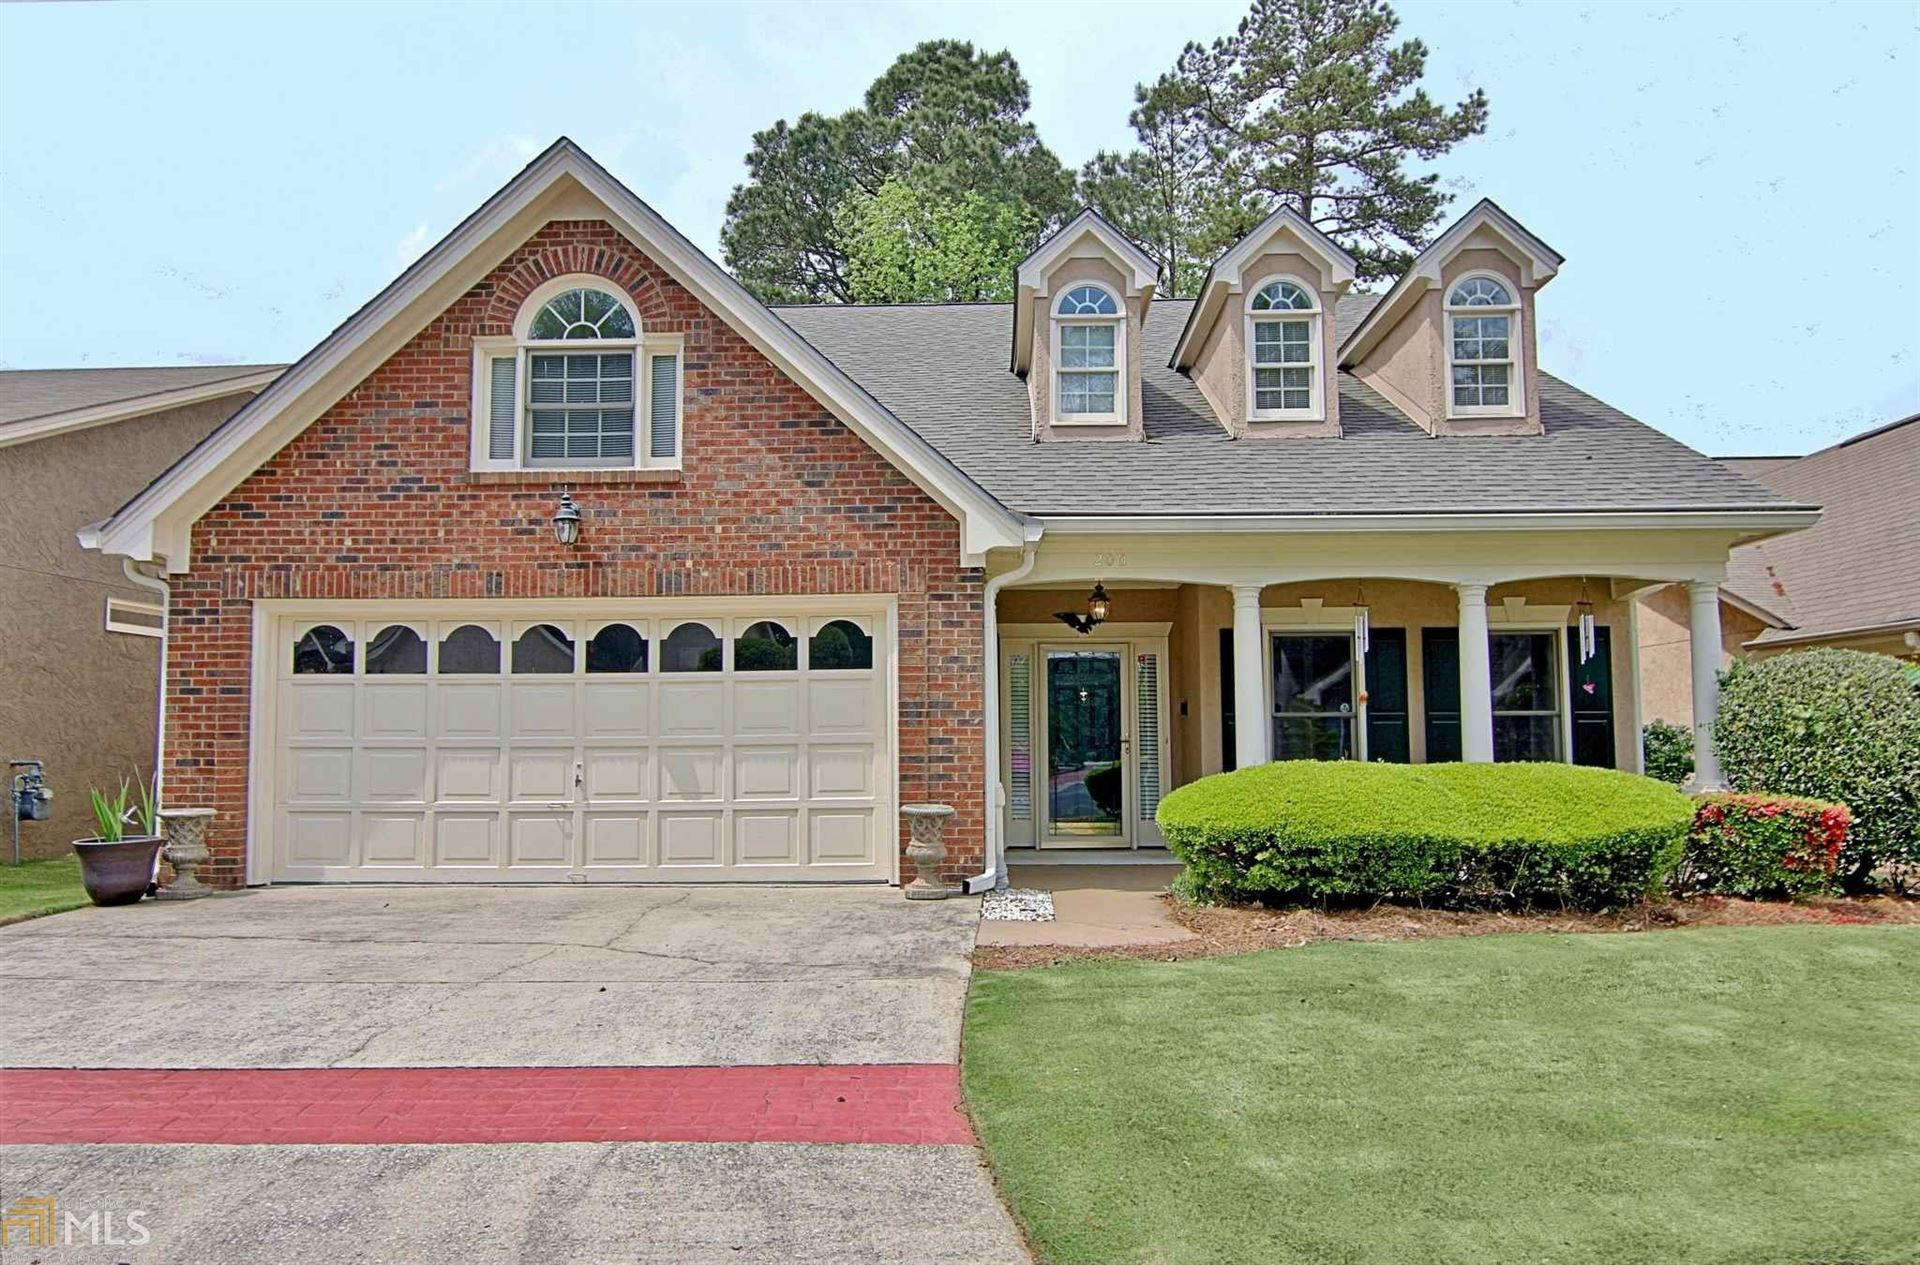 200 Masters Dr S, Peachtree City, GA 30269 - #: 8845313